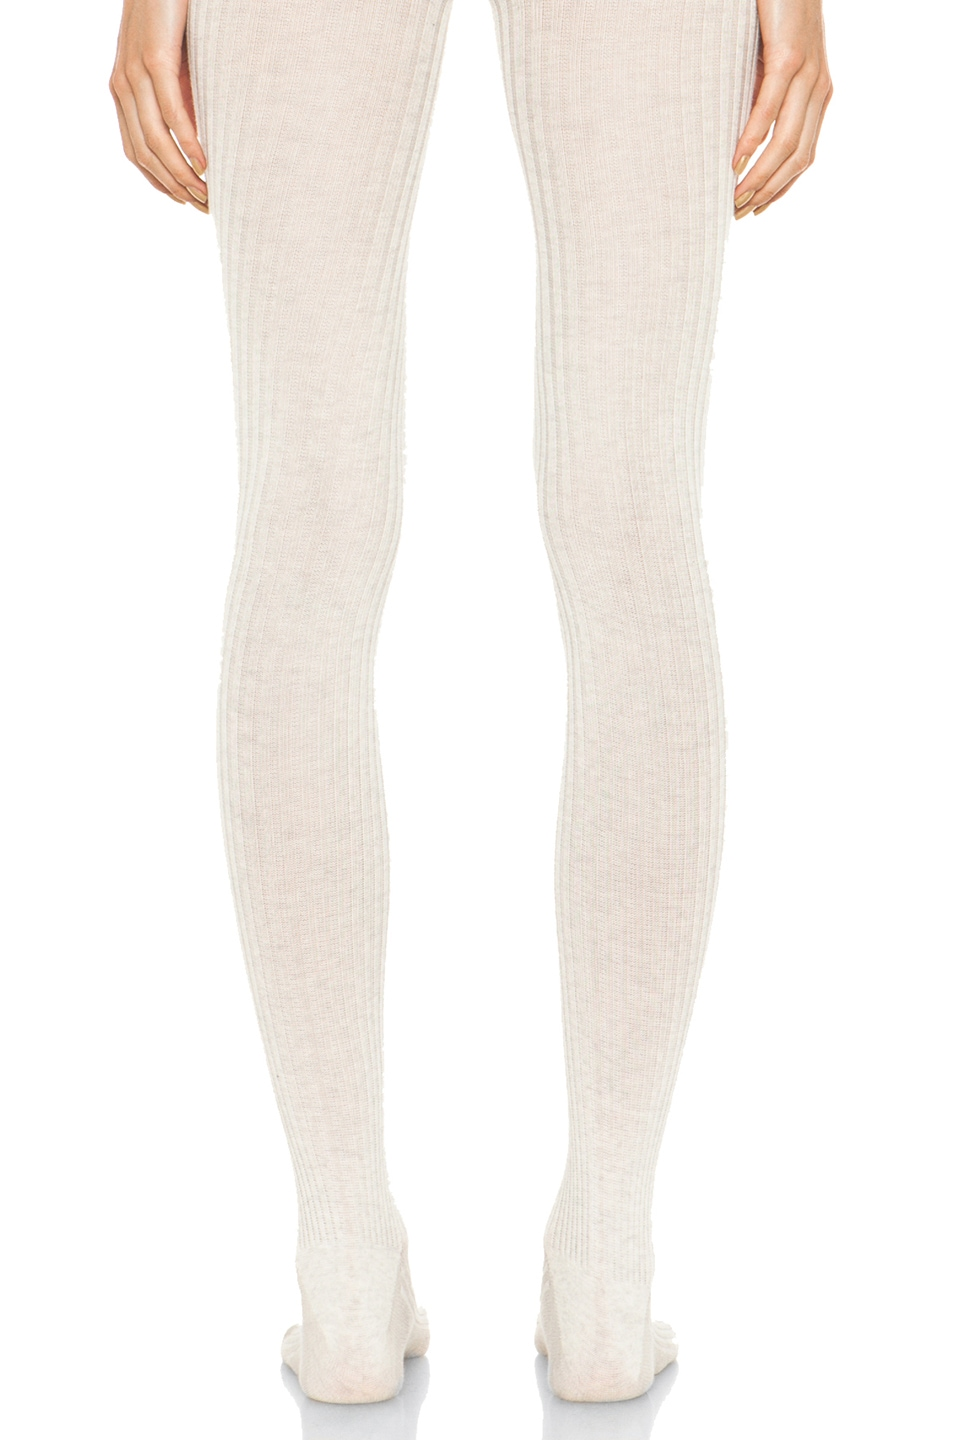 Image 4 of A.P.C. Collant Tights in Beige